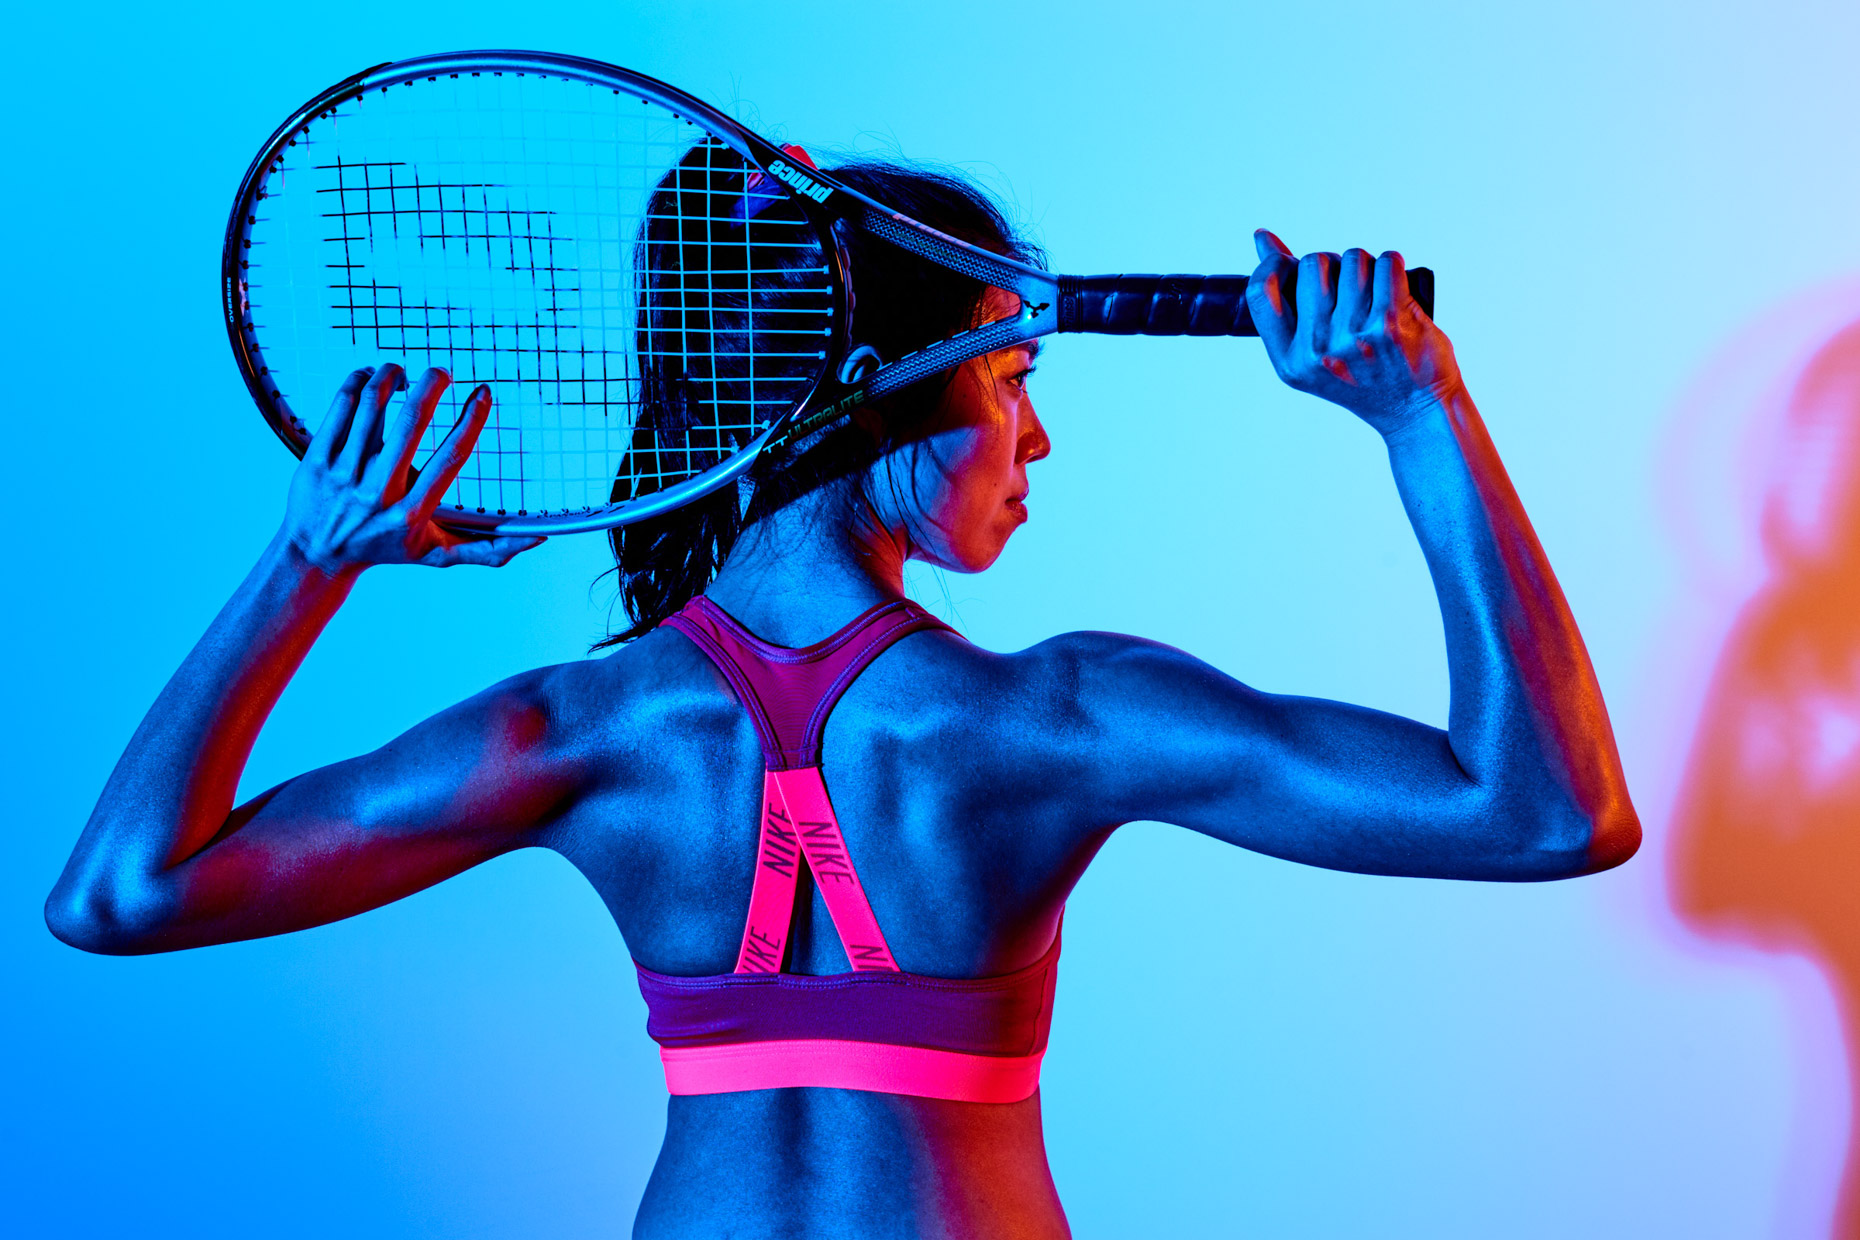 Professional sport athlete Jenny Meeker, of Option Models and Media, plays tennis